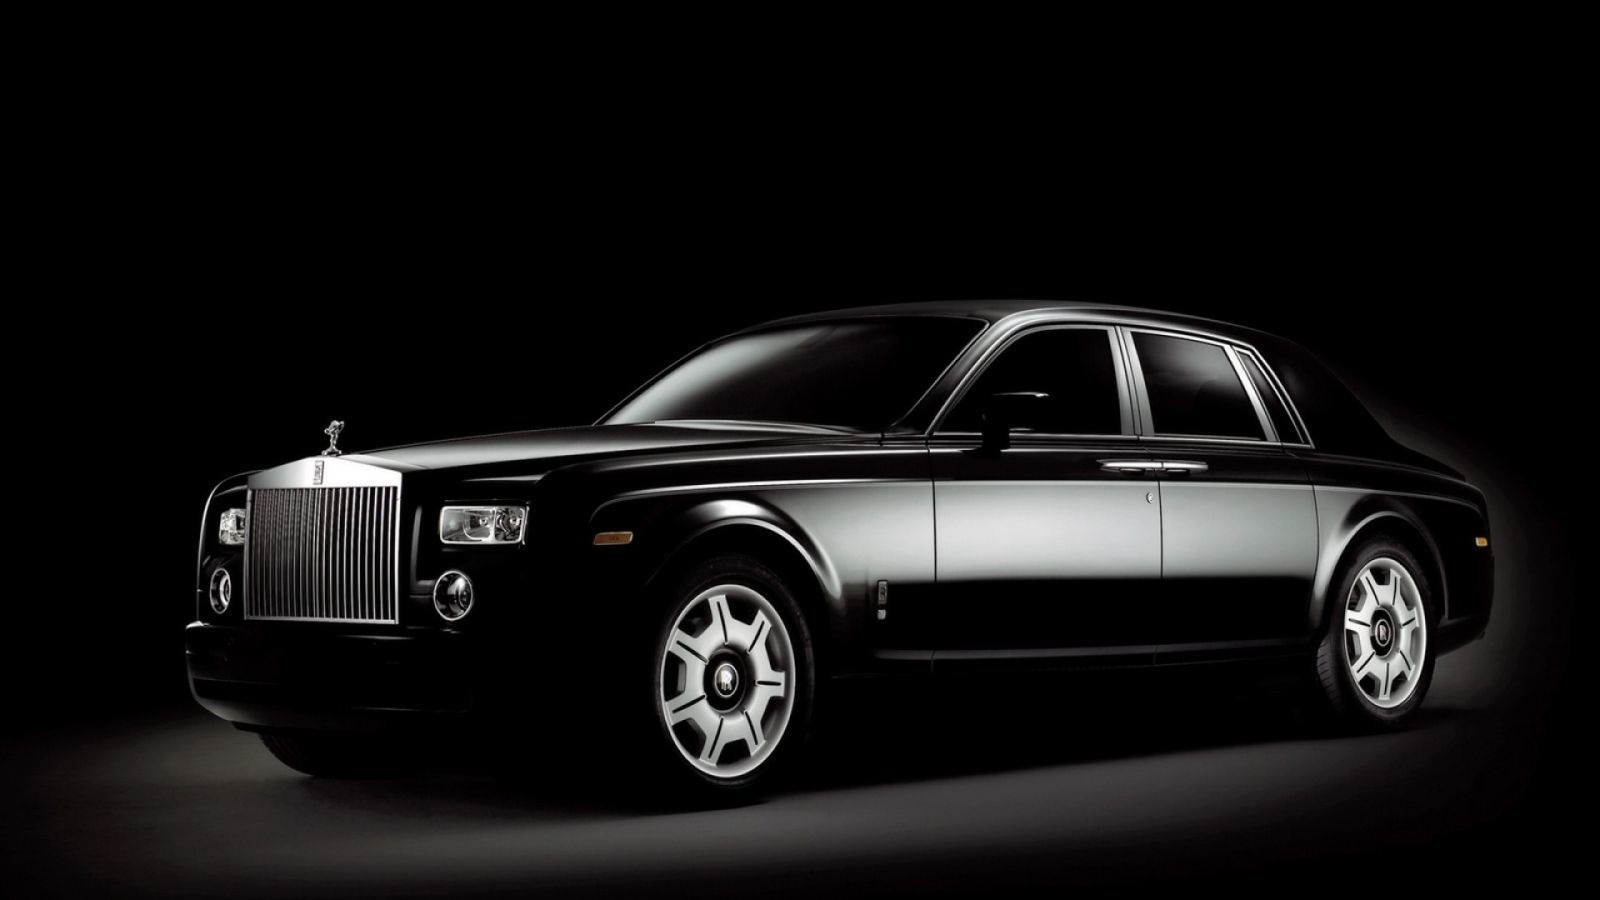 for your desktop: rolls-royce phantom wallpapers, 41 top quality